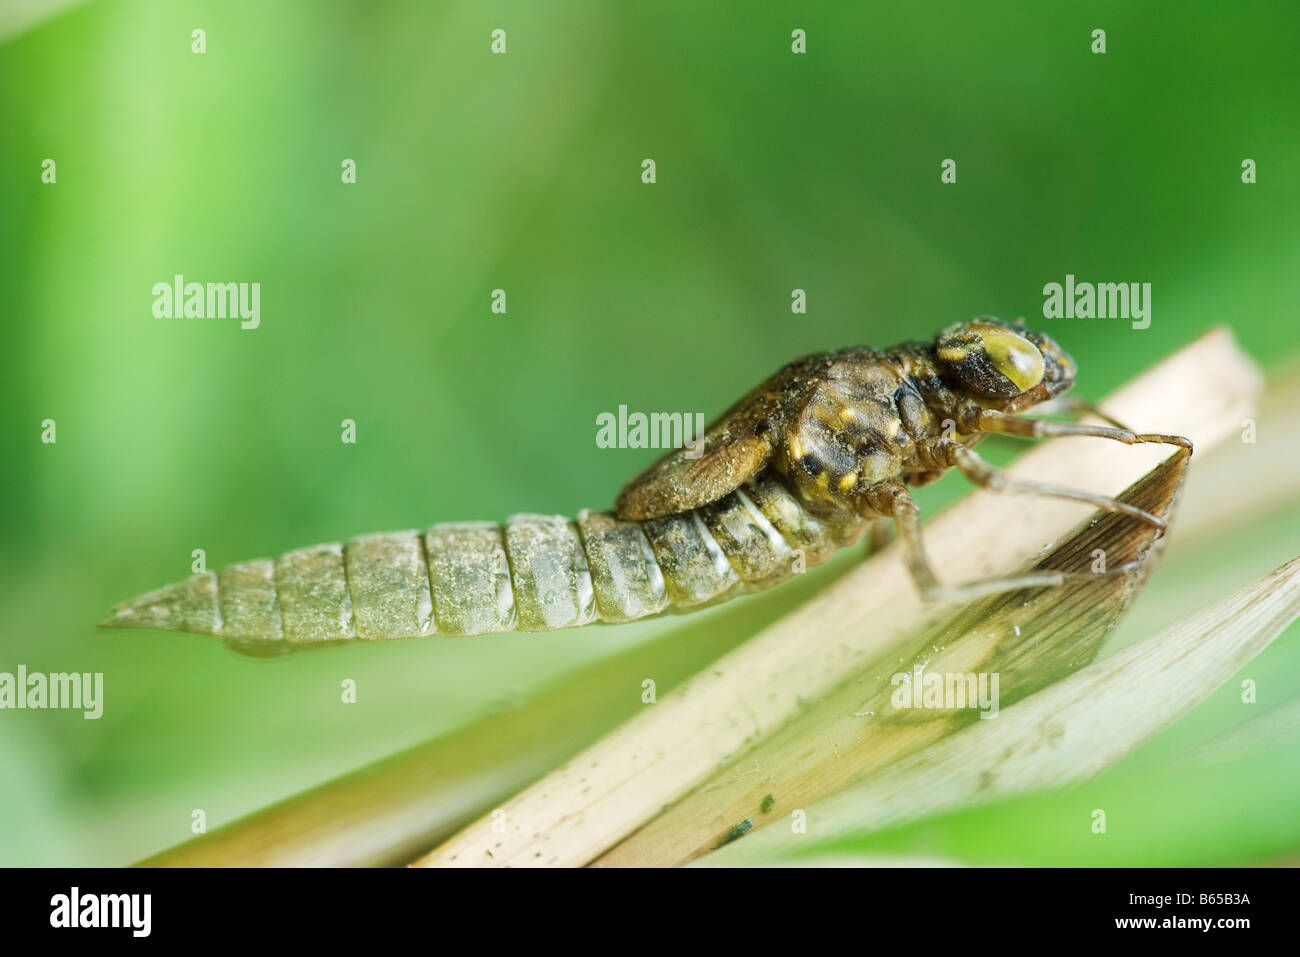 Empty dragonfly exoskeleton clinging onto dried plant stalk - Stock Image